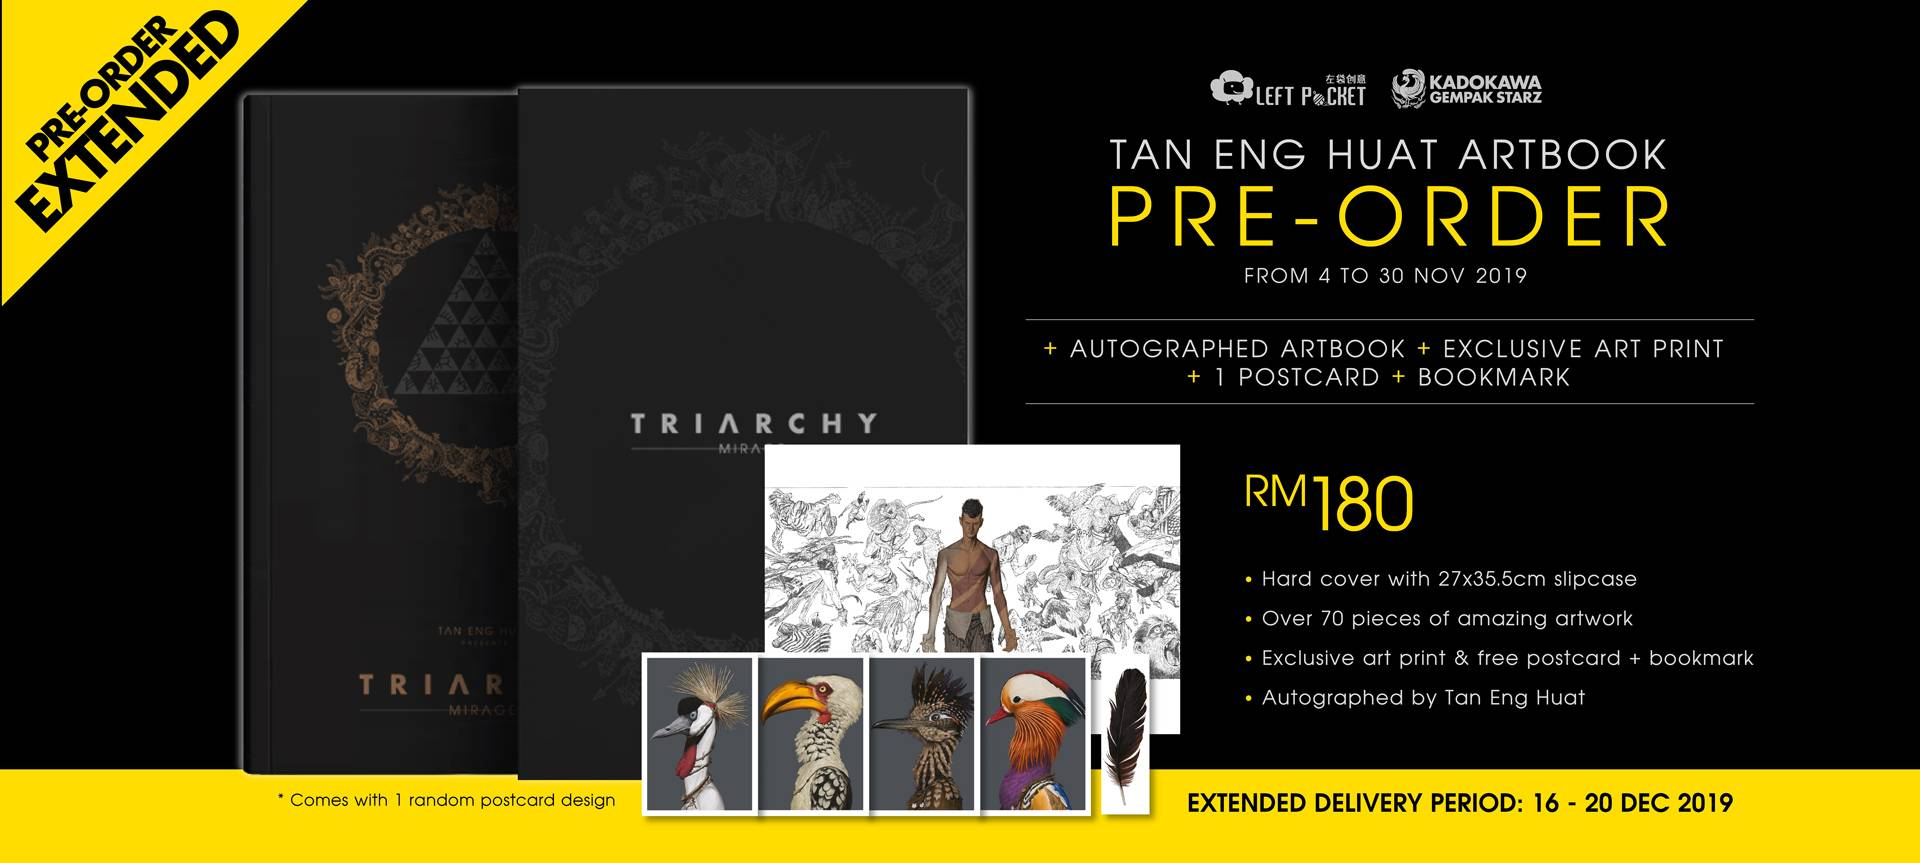 PRE-ORDER Triarchy Mirage - Extended